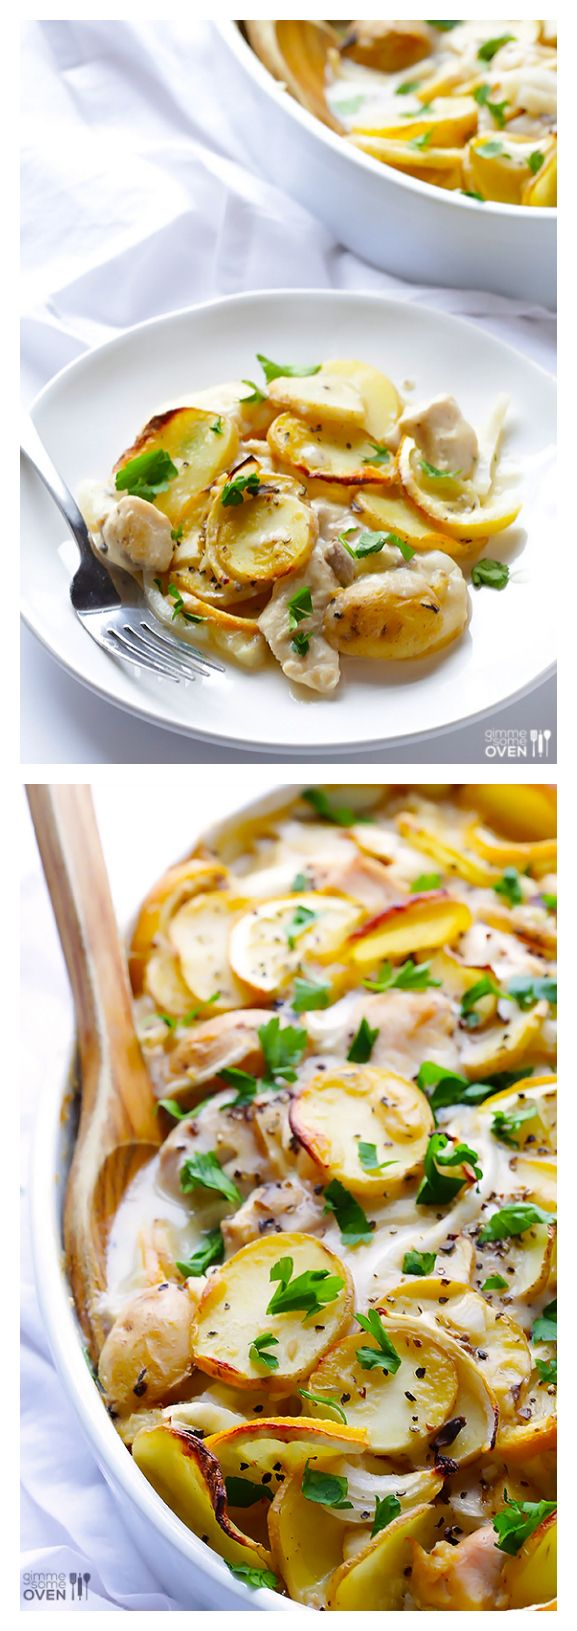 Easy Lemon Chicken Potato Casserole -- one of our family's favorite recipes! gimmesomeoven.com #recipe